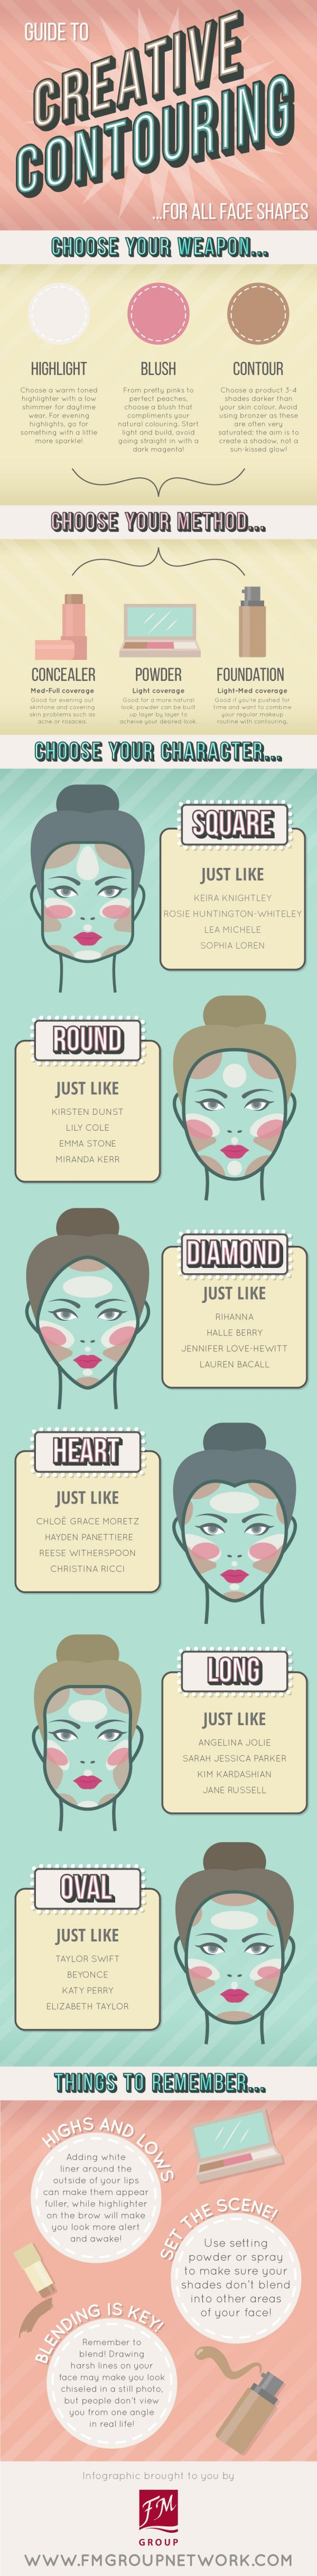 Guide to Creative Contouring for All Face Shapes